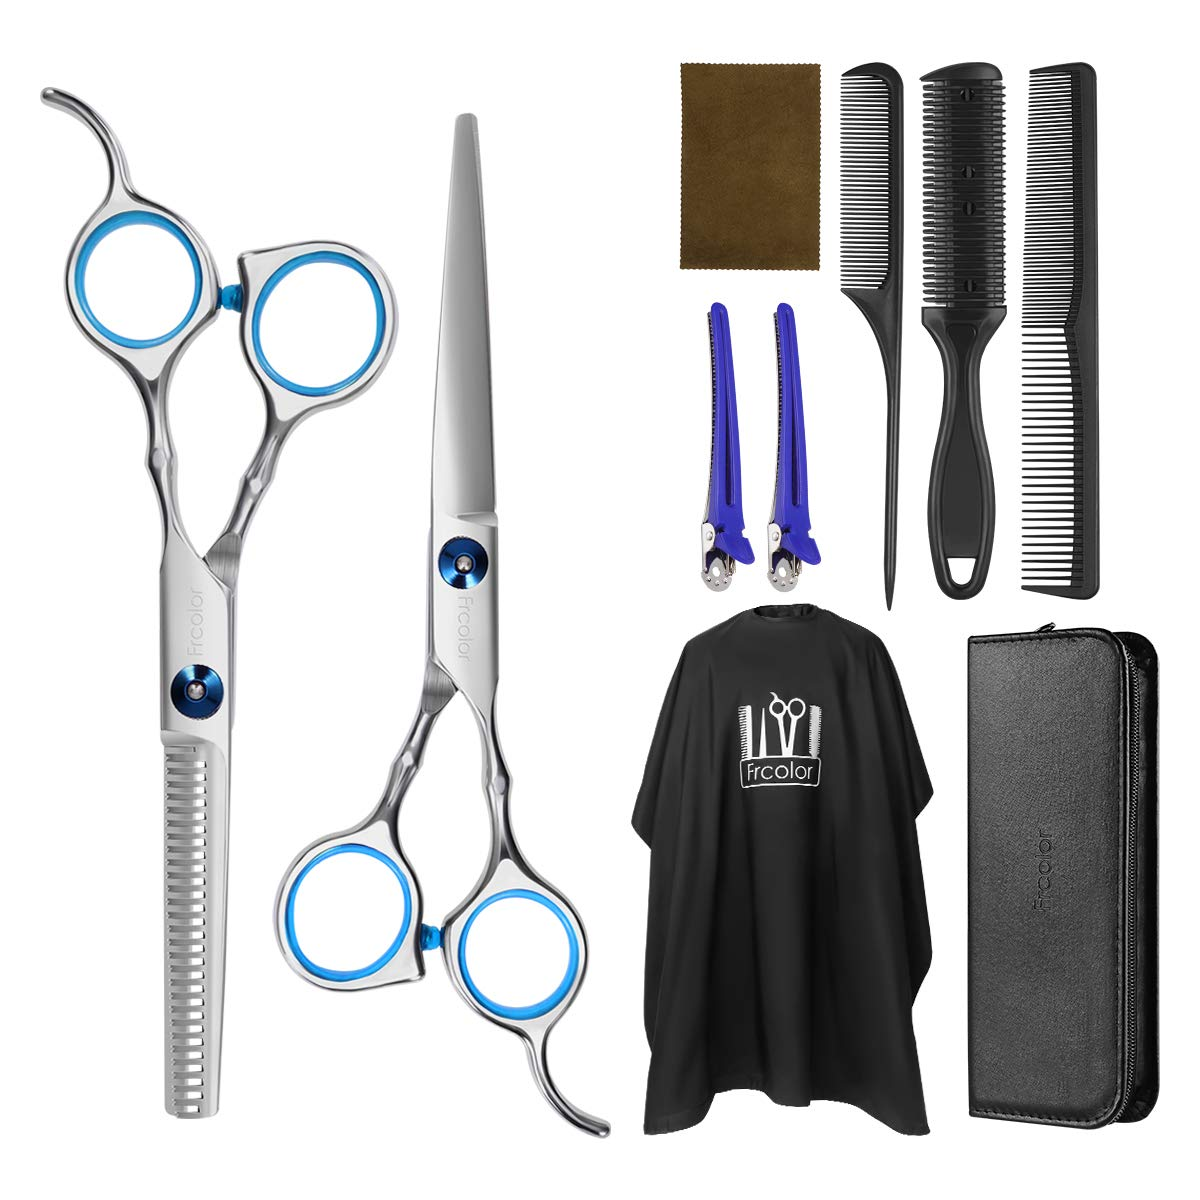 Fr Color Hair Cutting Scissors